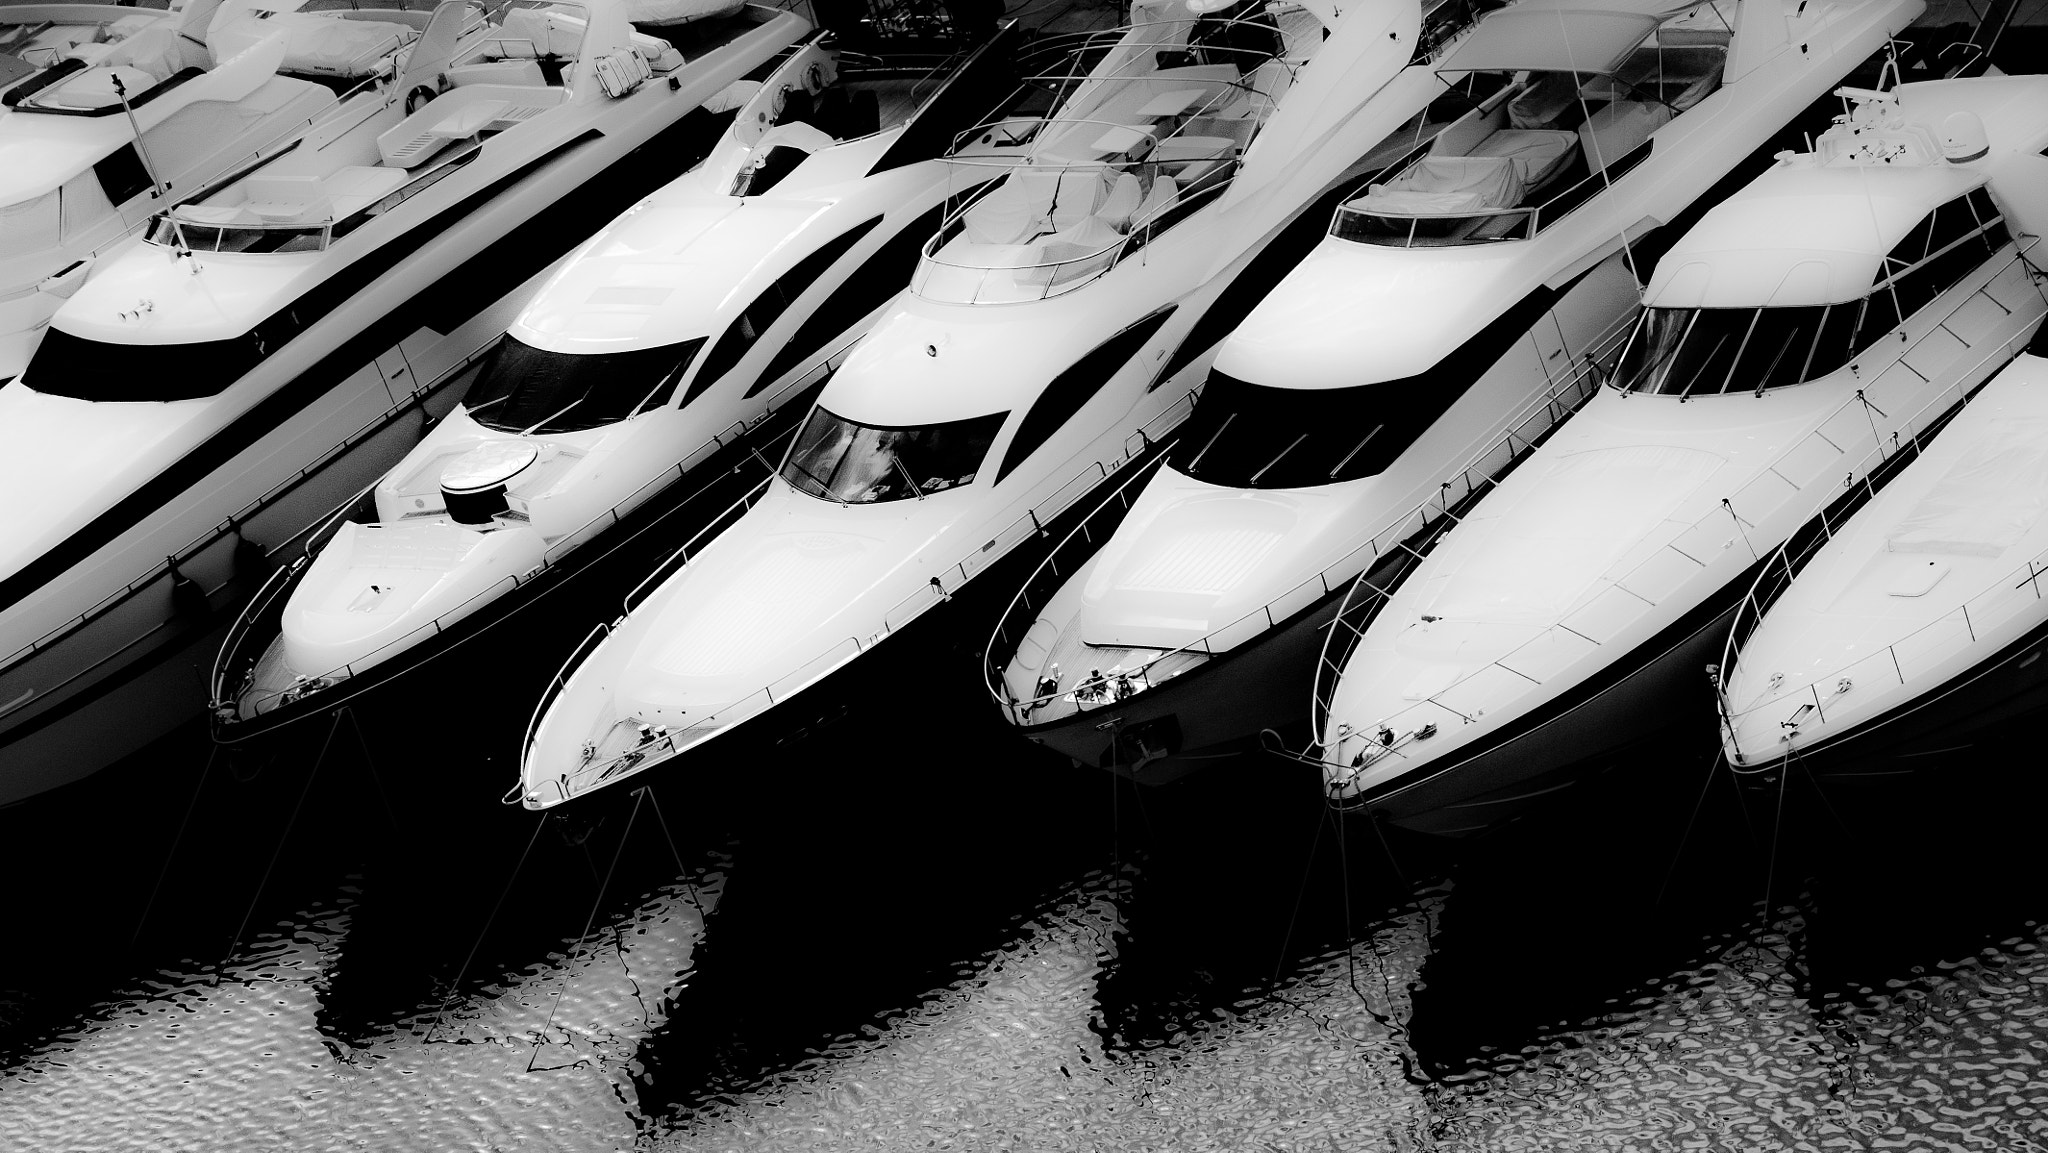 Photograph Shadow and boats by hakim belahouane on 500px